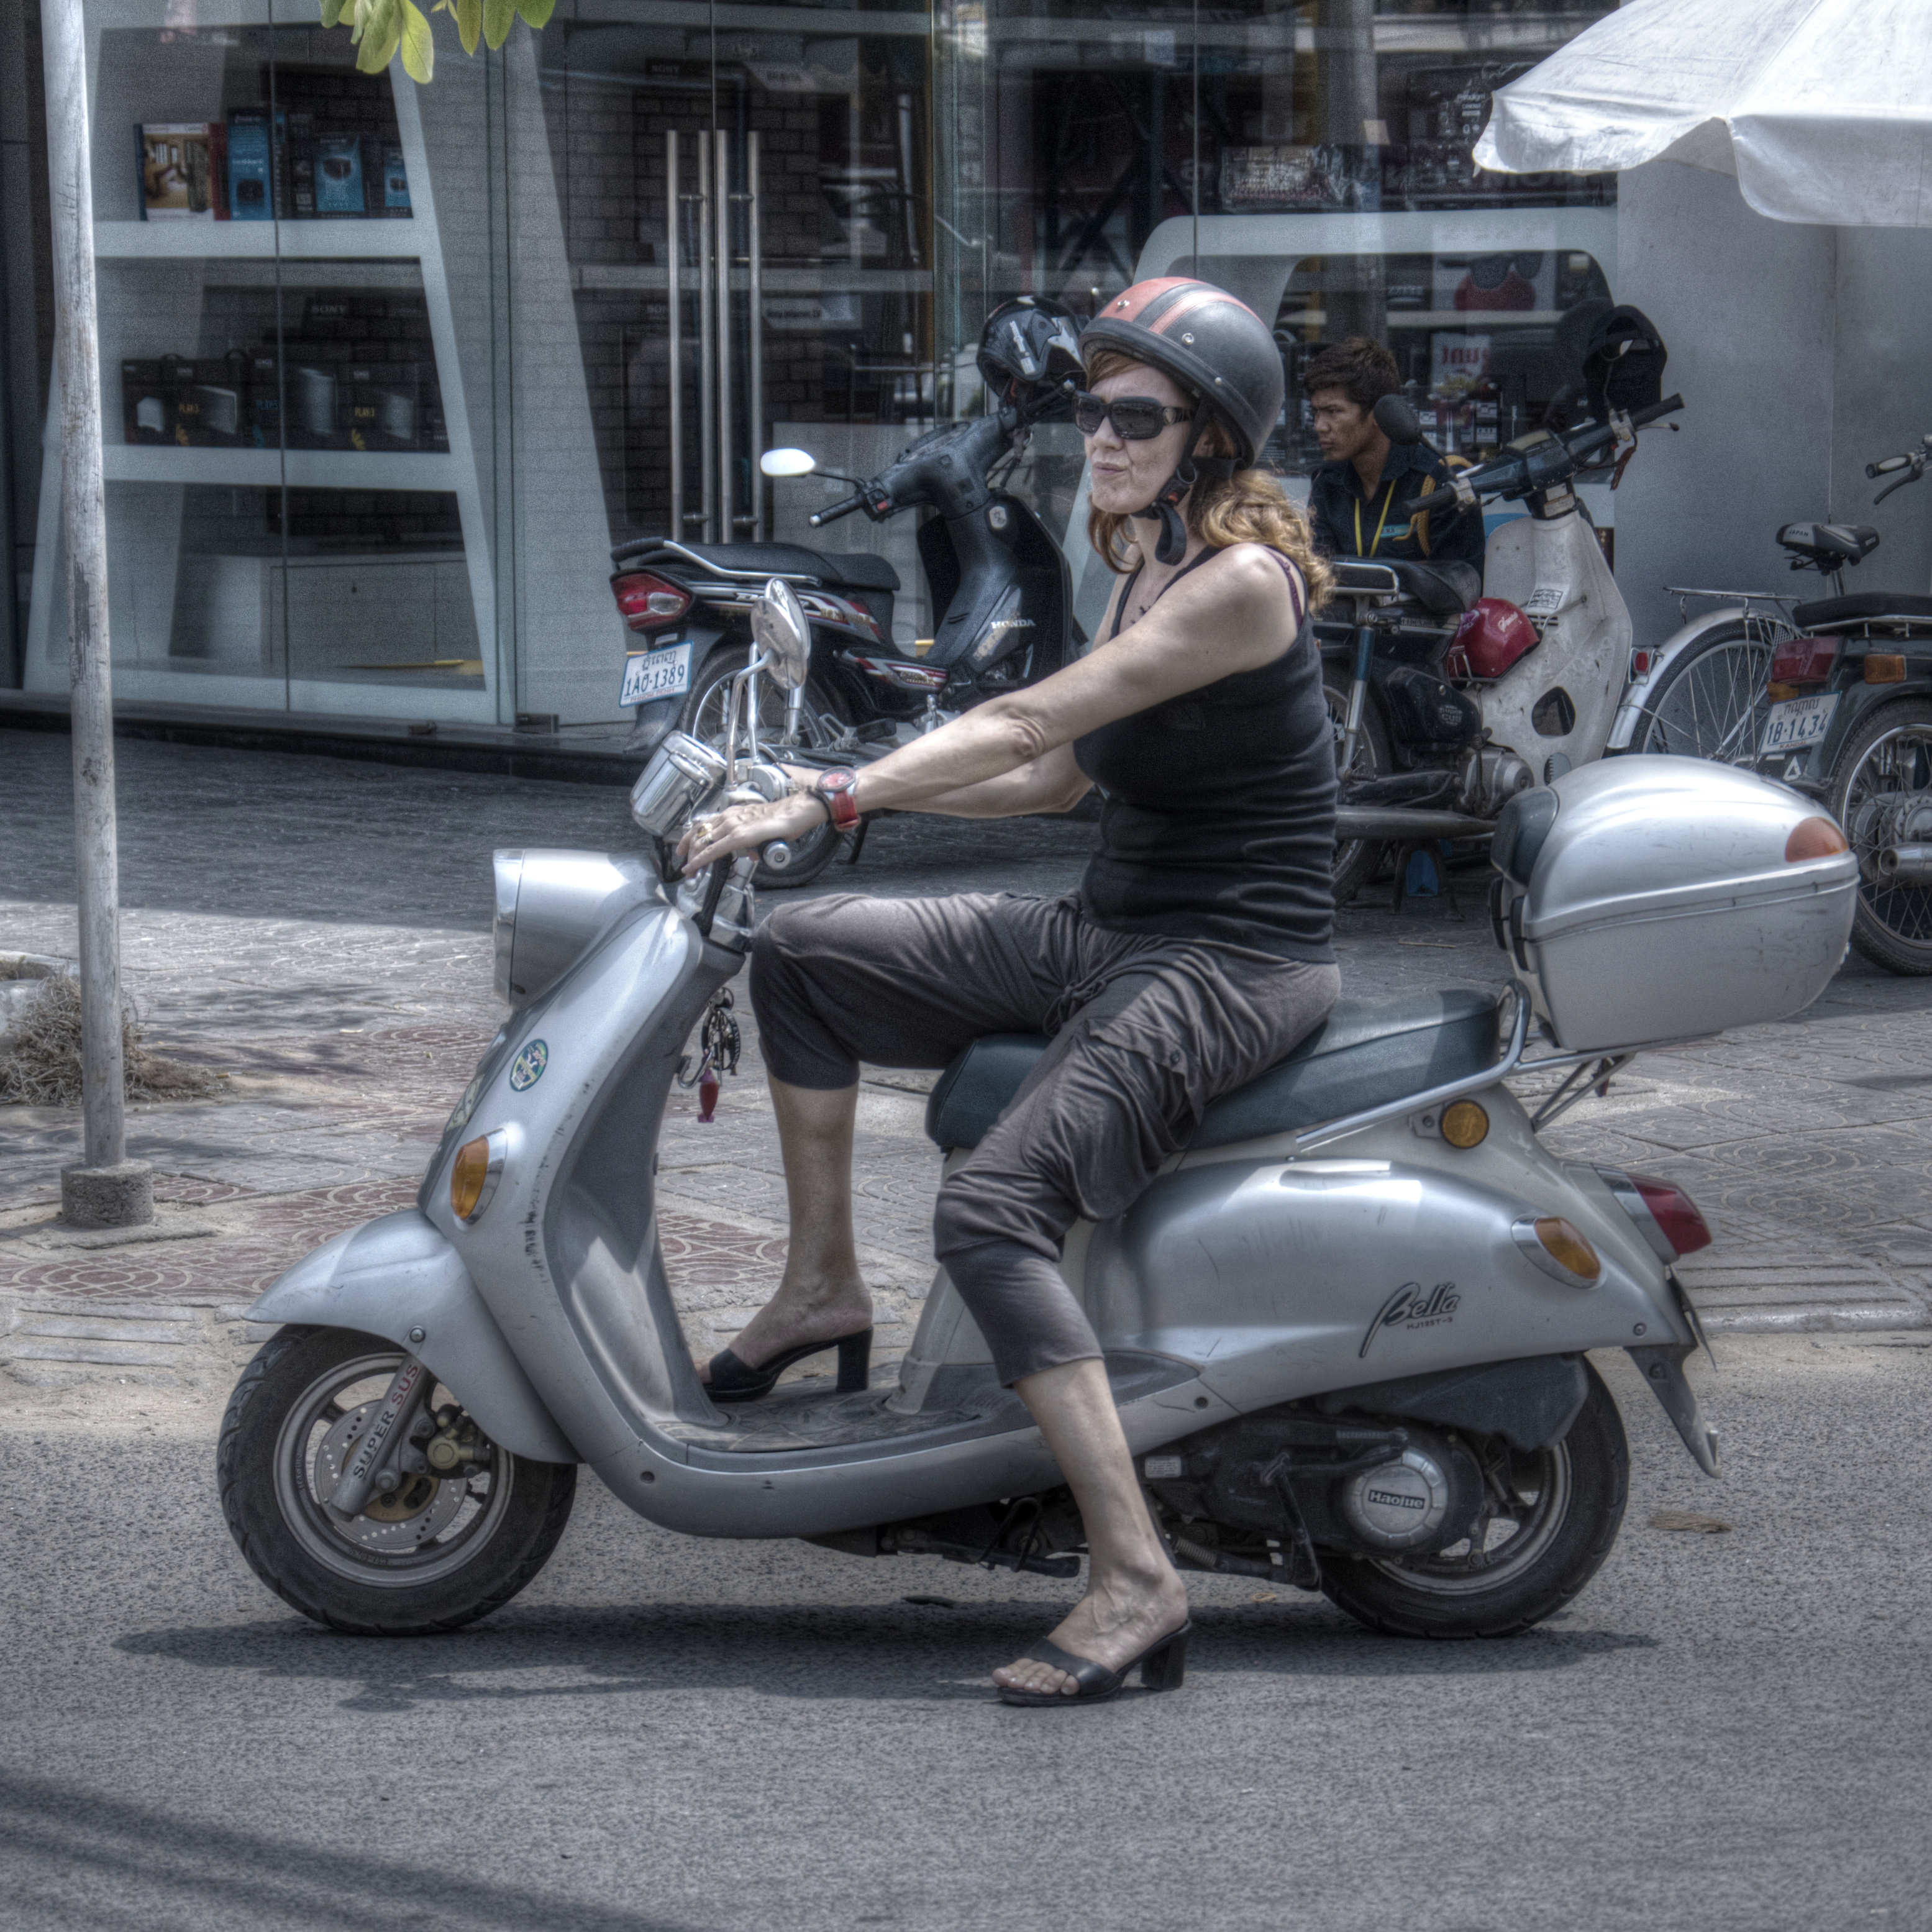 An expat in Phnom Penh, Cambodia, riding a German Zundapp Bella scooter.